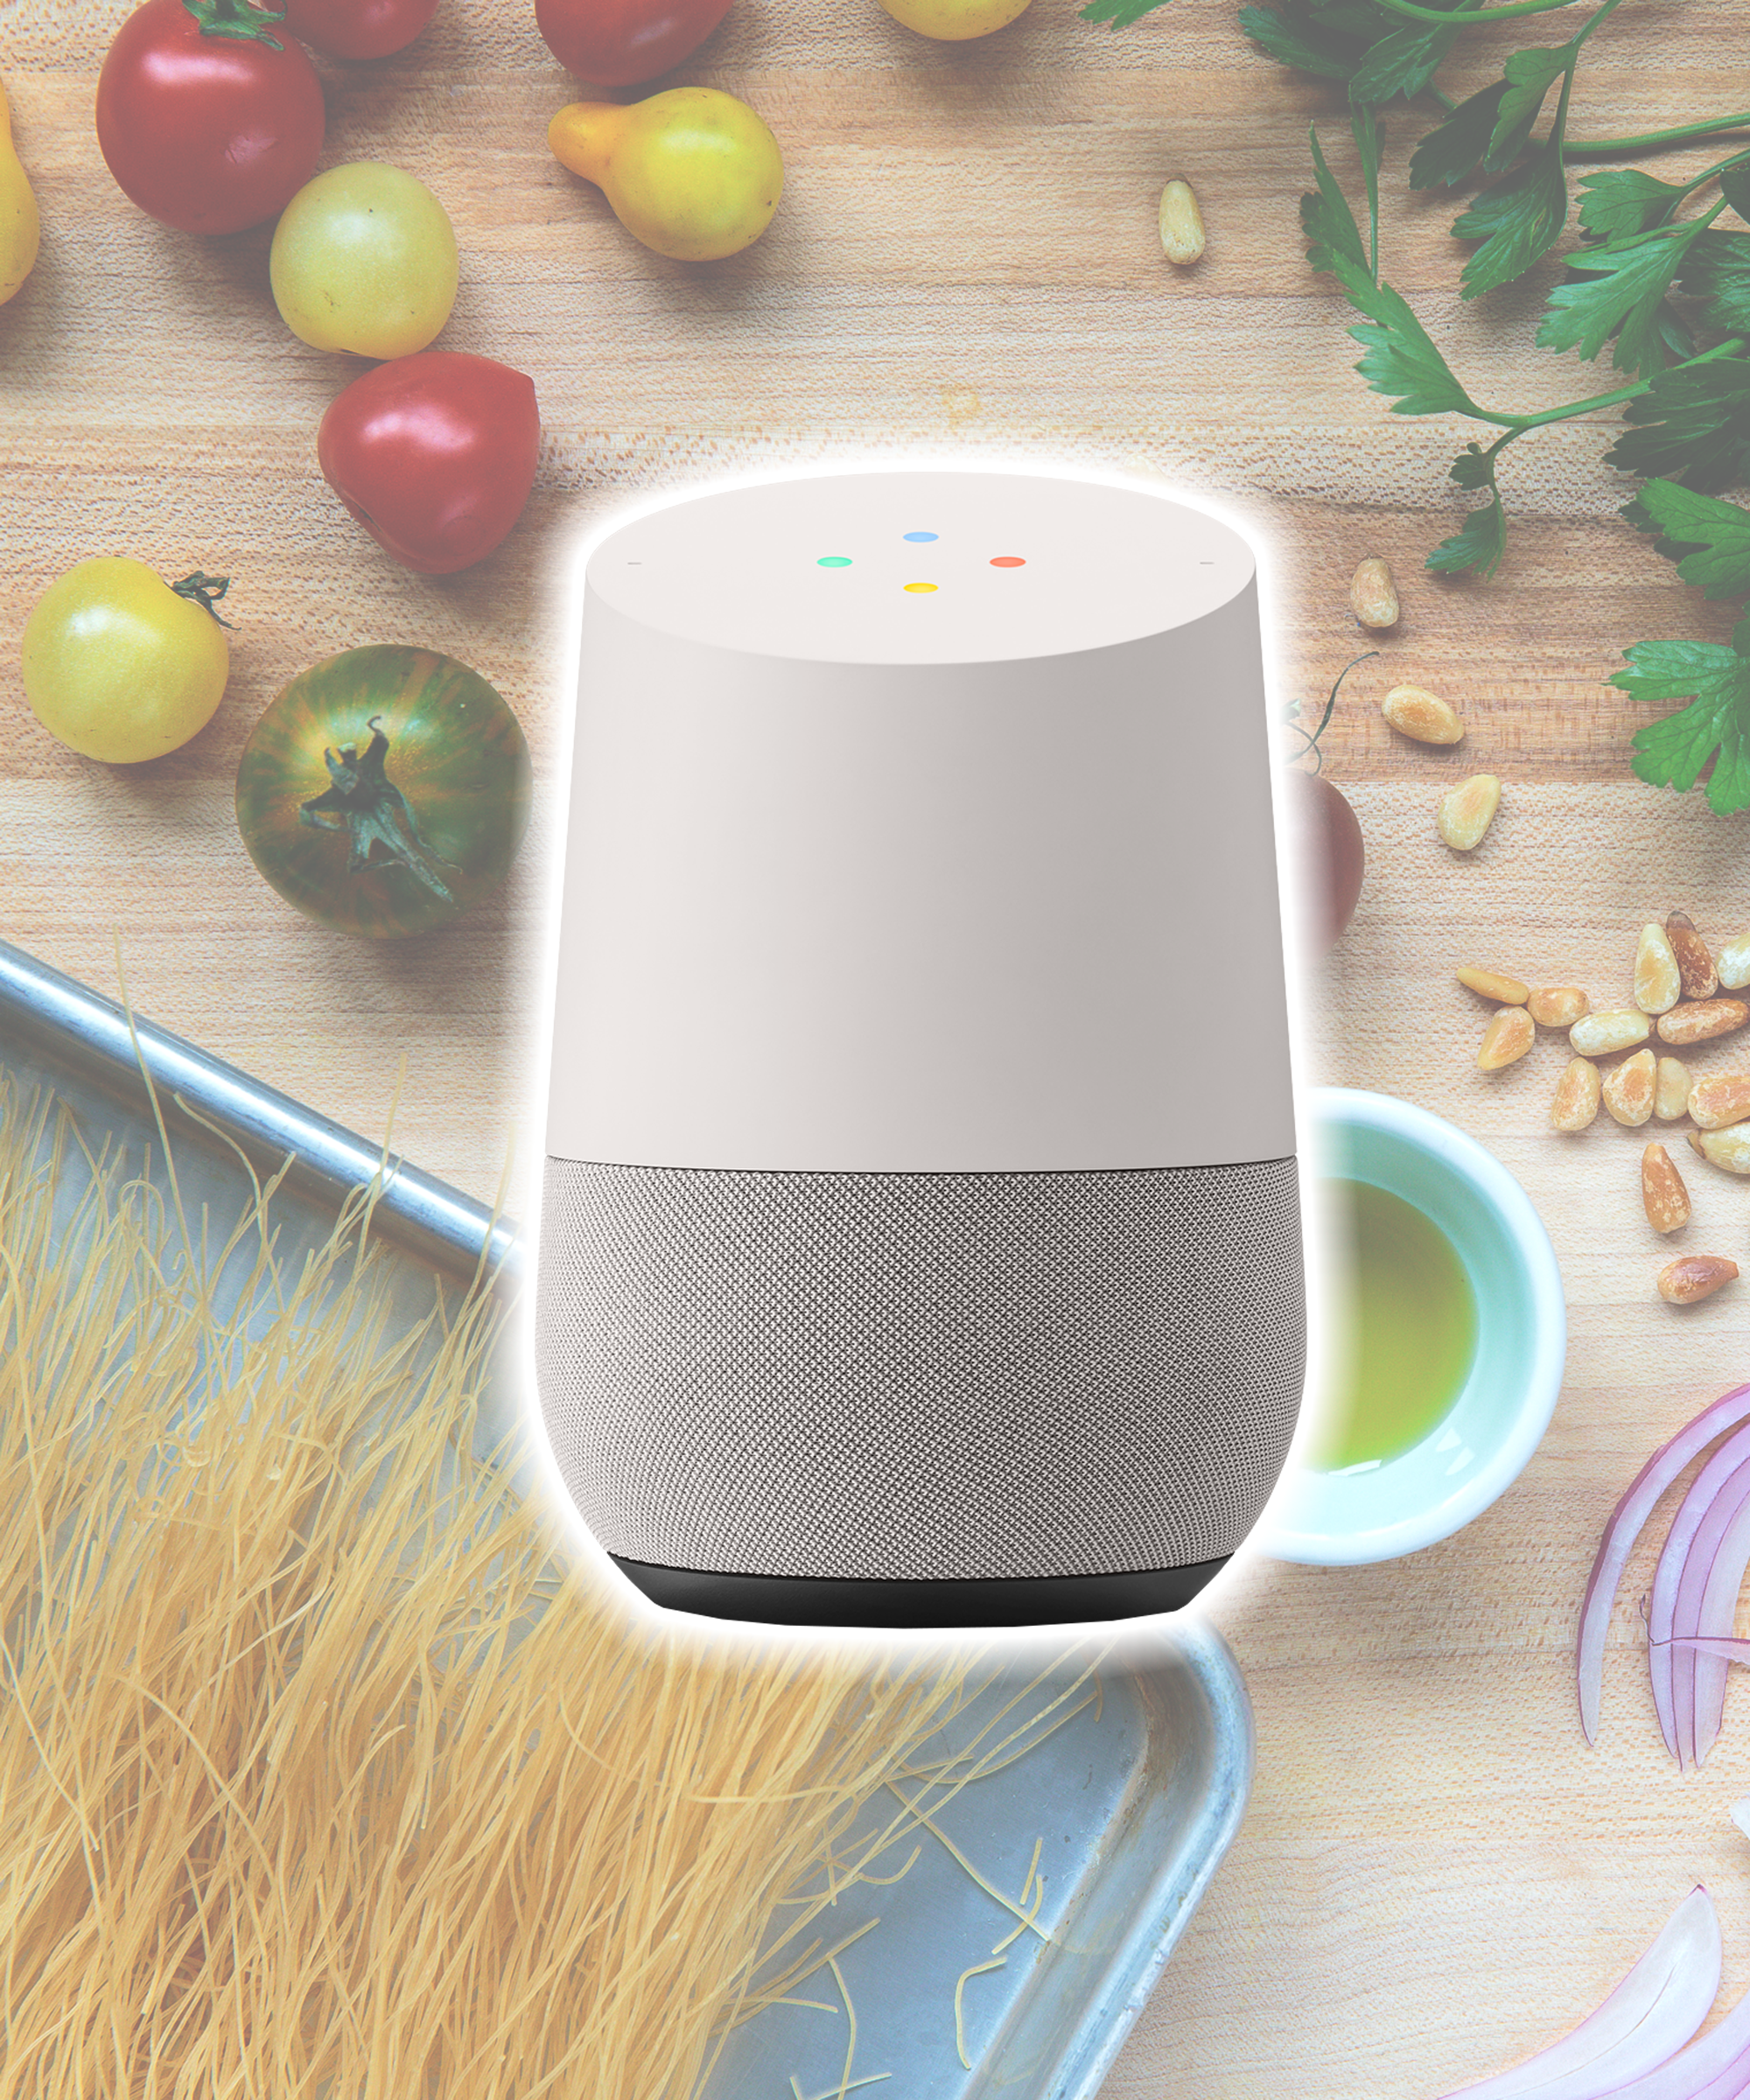 Google Home Is Your New Cooking Guide With Over Five Million Recipes